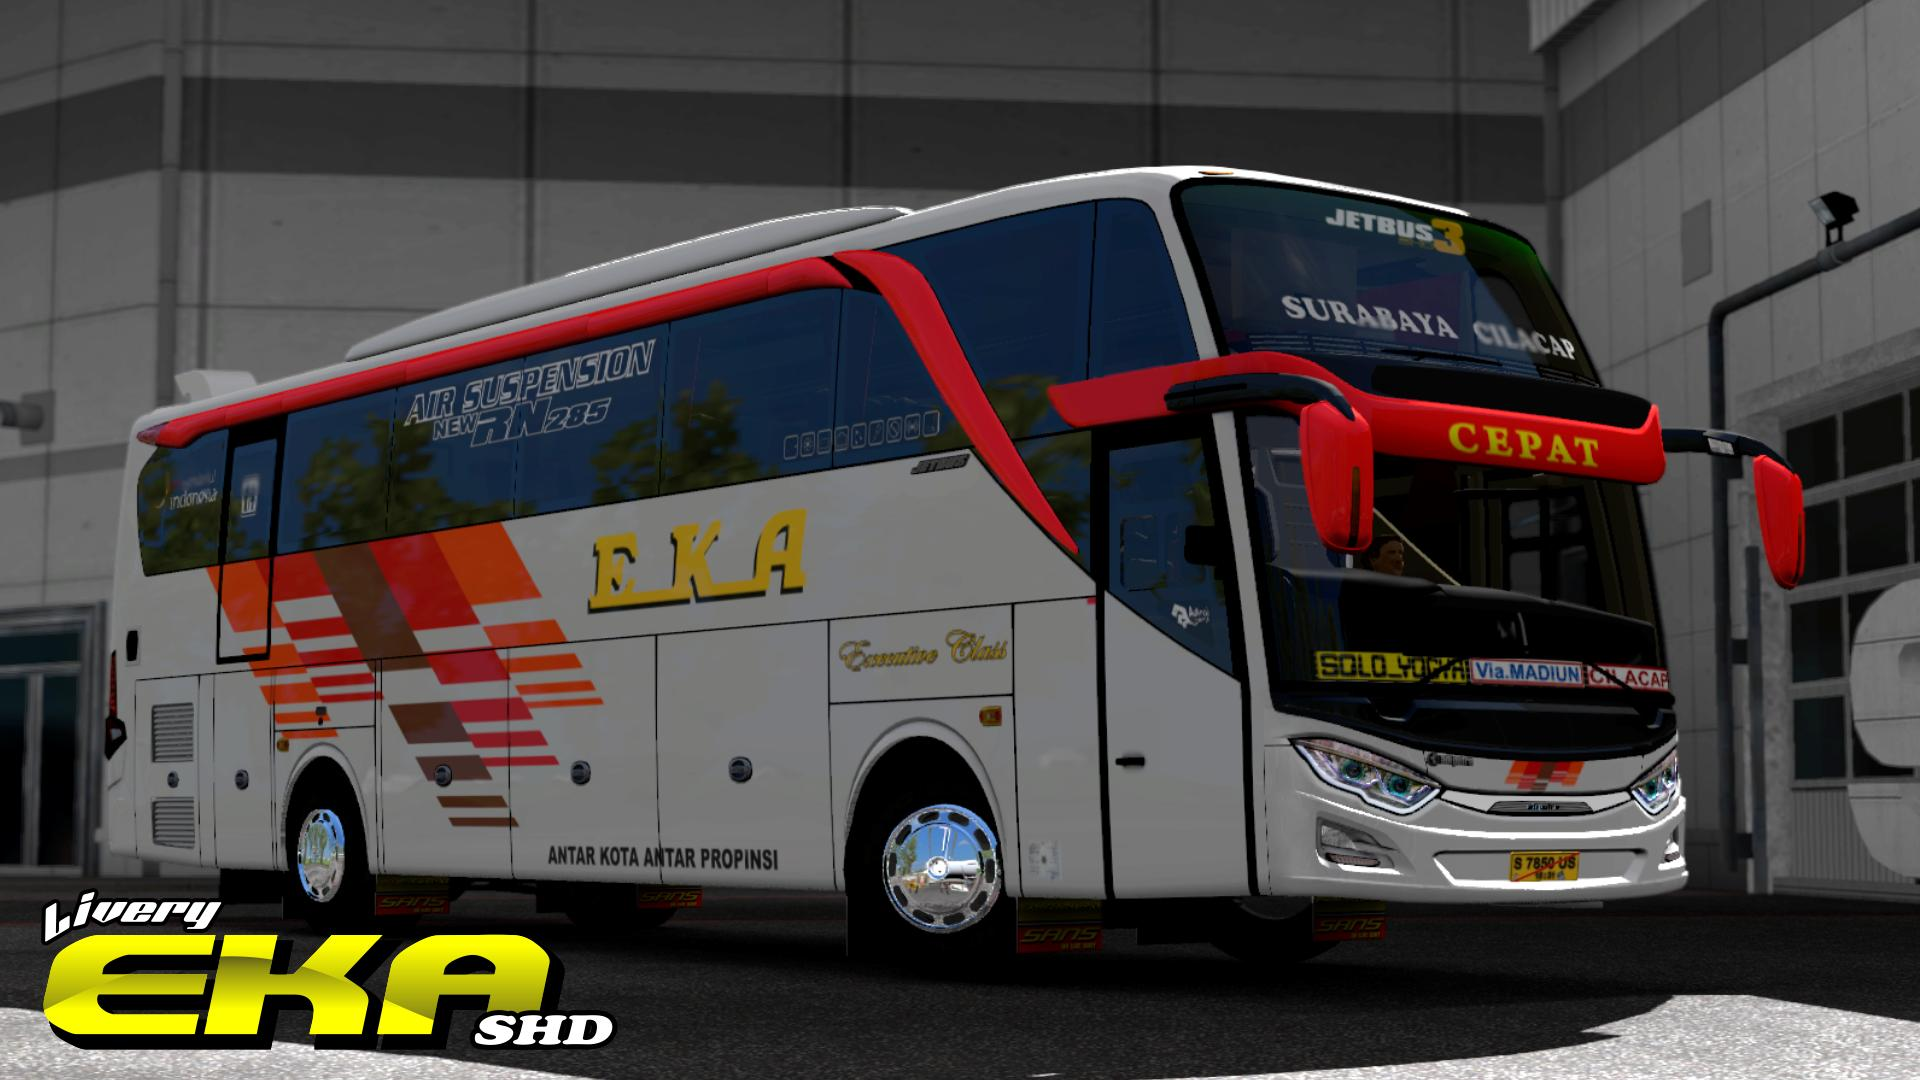 Livery Shd Eka For Android Apk Download